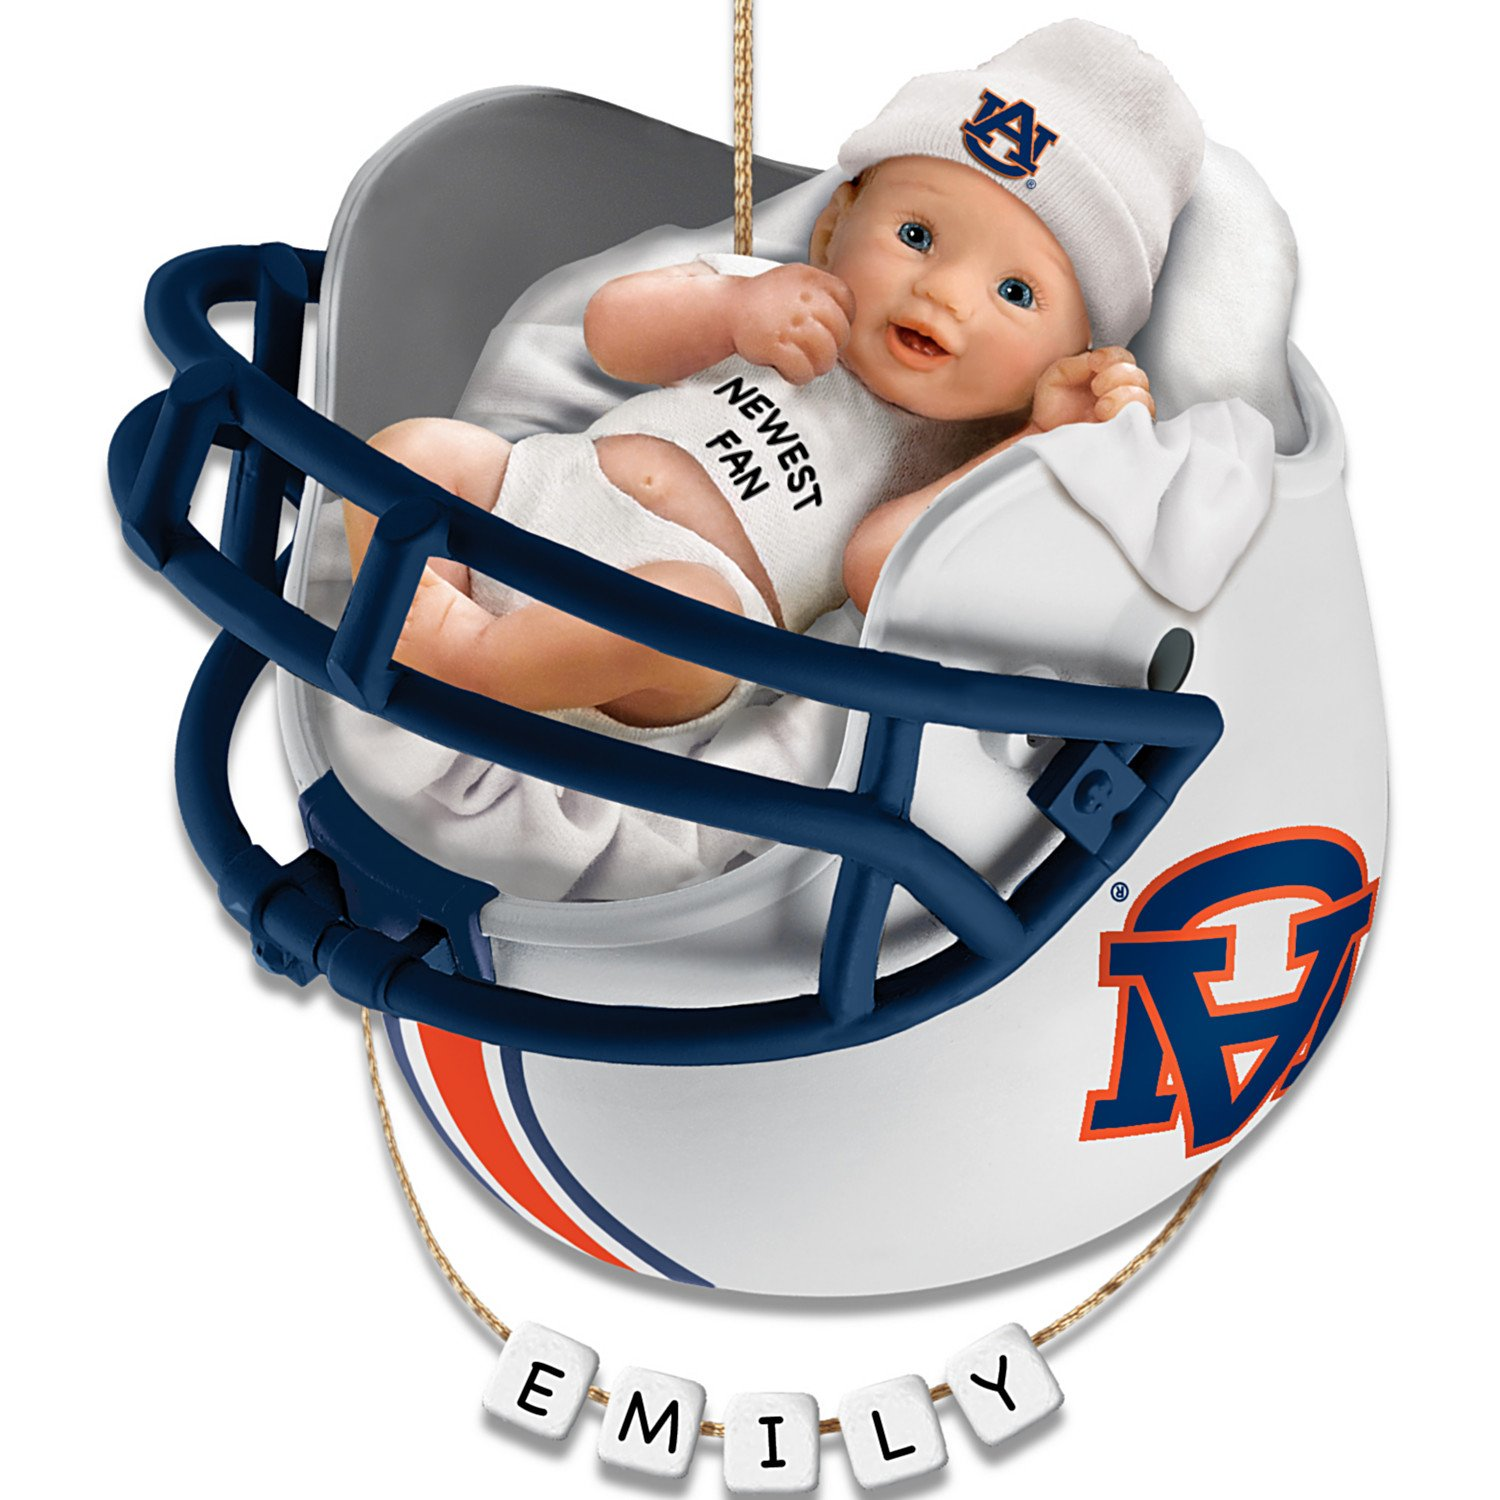 NCAA Auburn University Tigers Baby's First Christmas Ornament with Personalization Kit by The Bradford Exchange